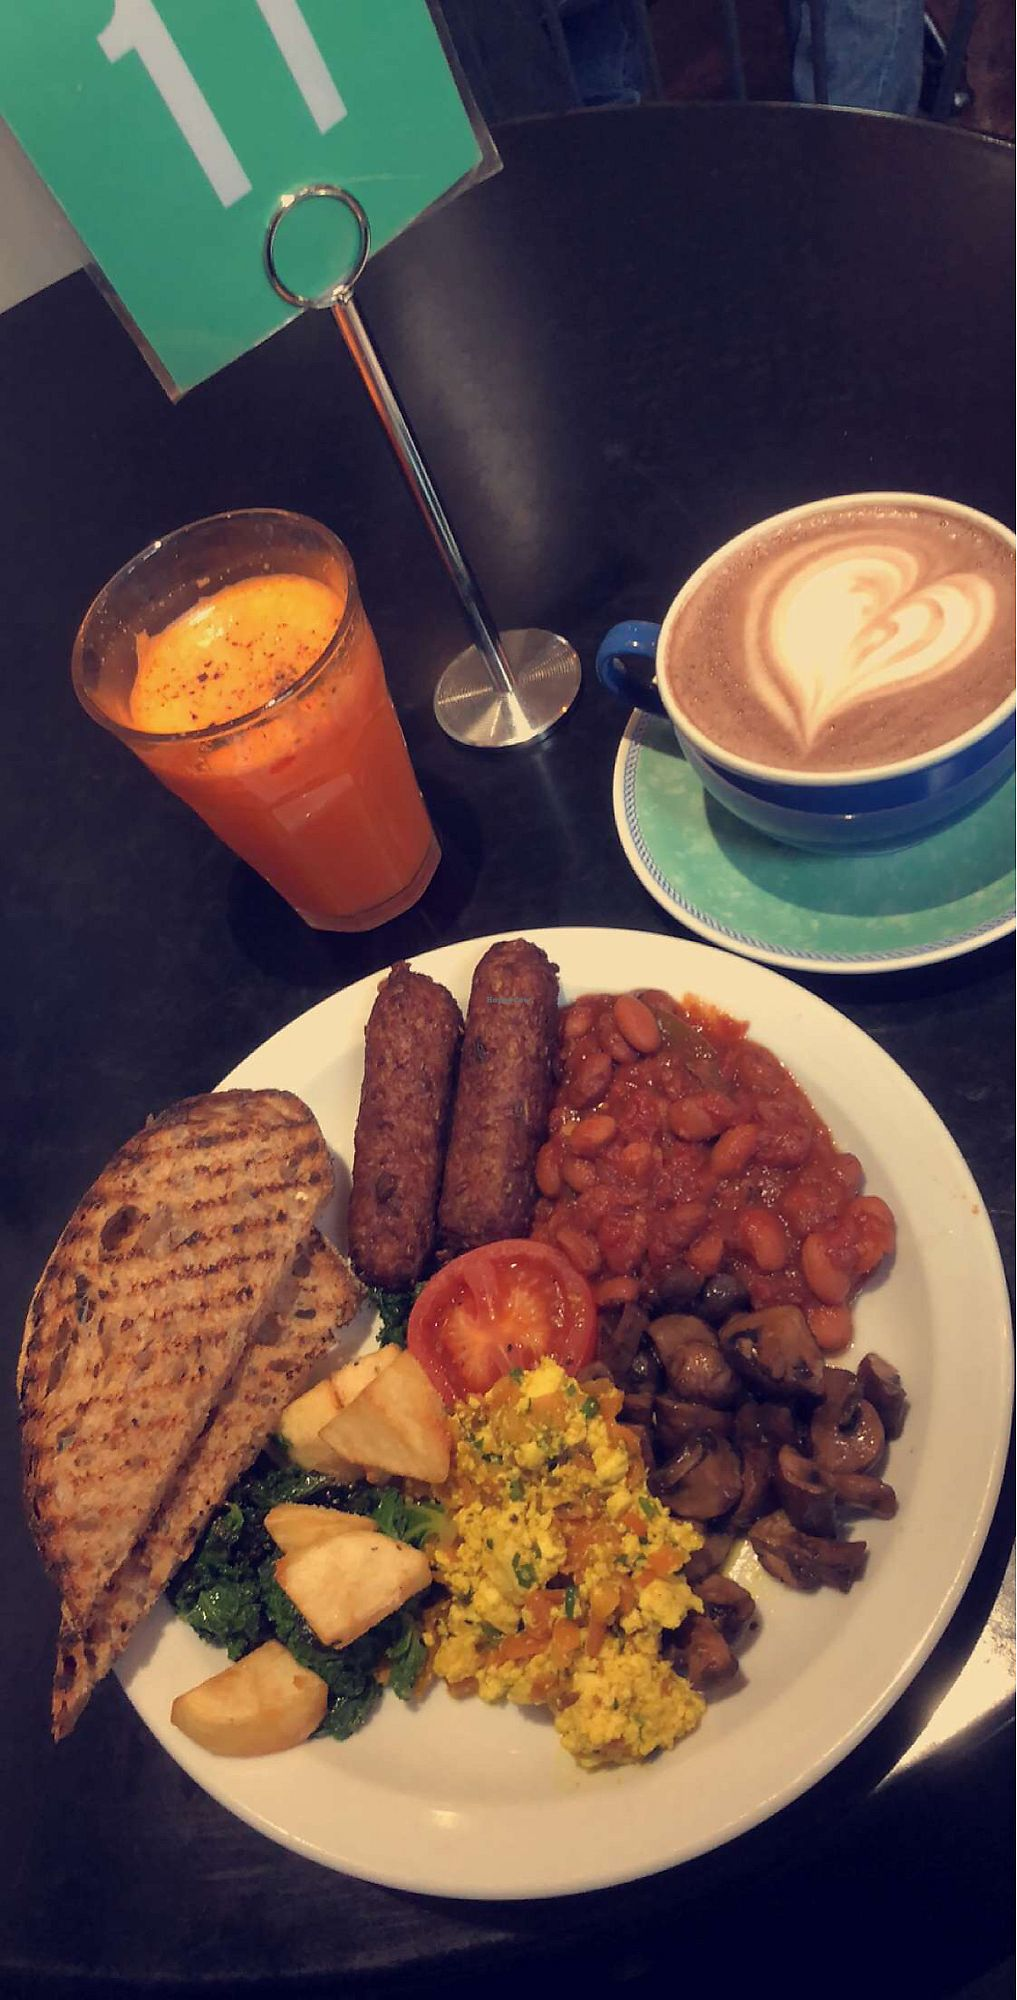 """Photo of The Gallery Cafe  by <a href=""""/members/profile/AtiyaDavids"""">AtiyaDavids</a> <br/>Full English with hot chocolate and turmeric, carrot, black pepper juice <br/> April 2, 2018  - <a href='/contact/abuse/image/3676/379774'>Report</a>"""